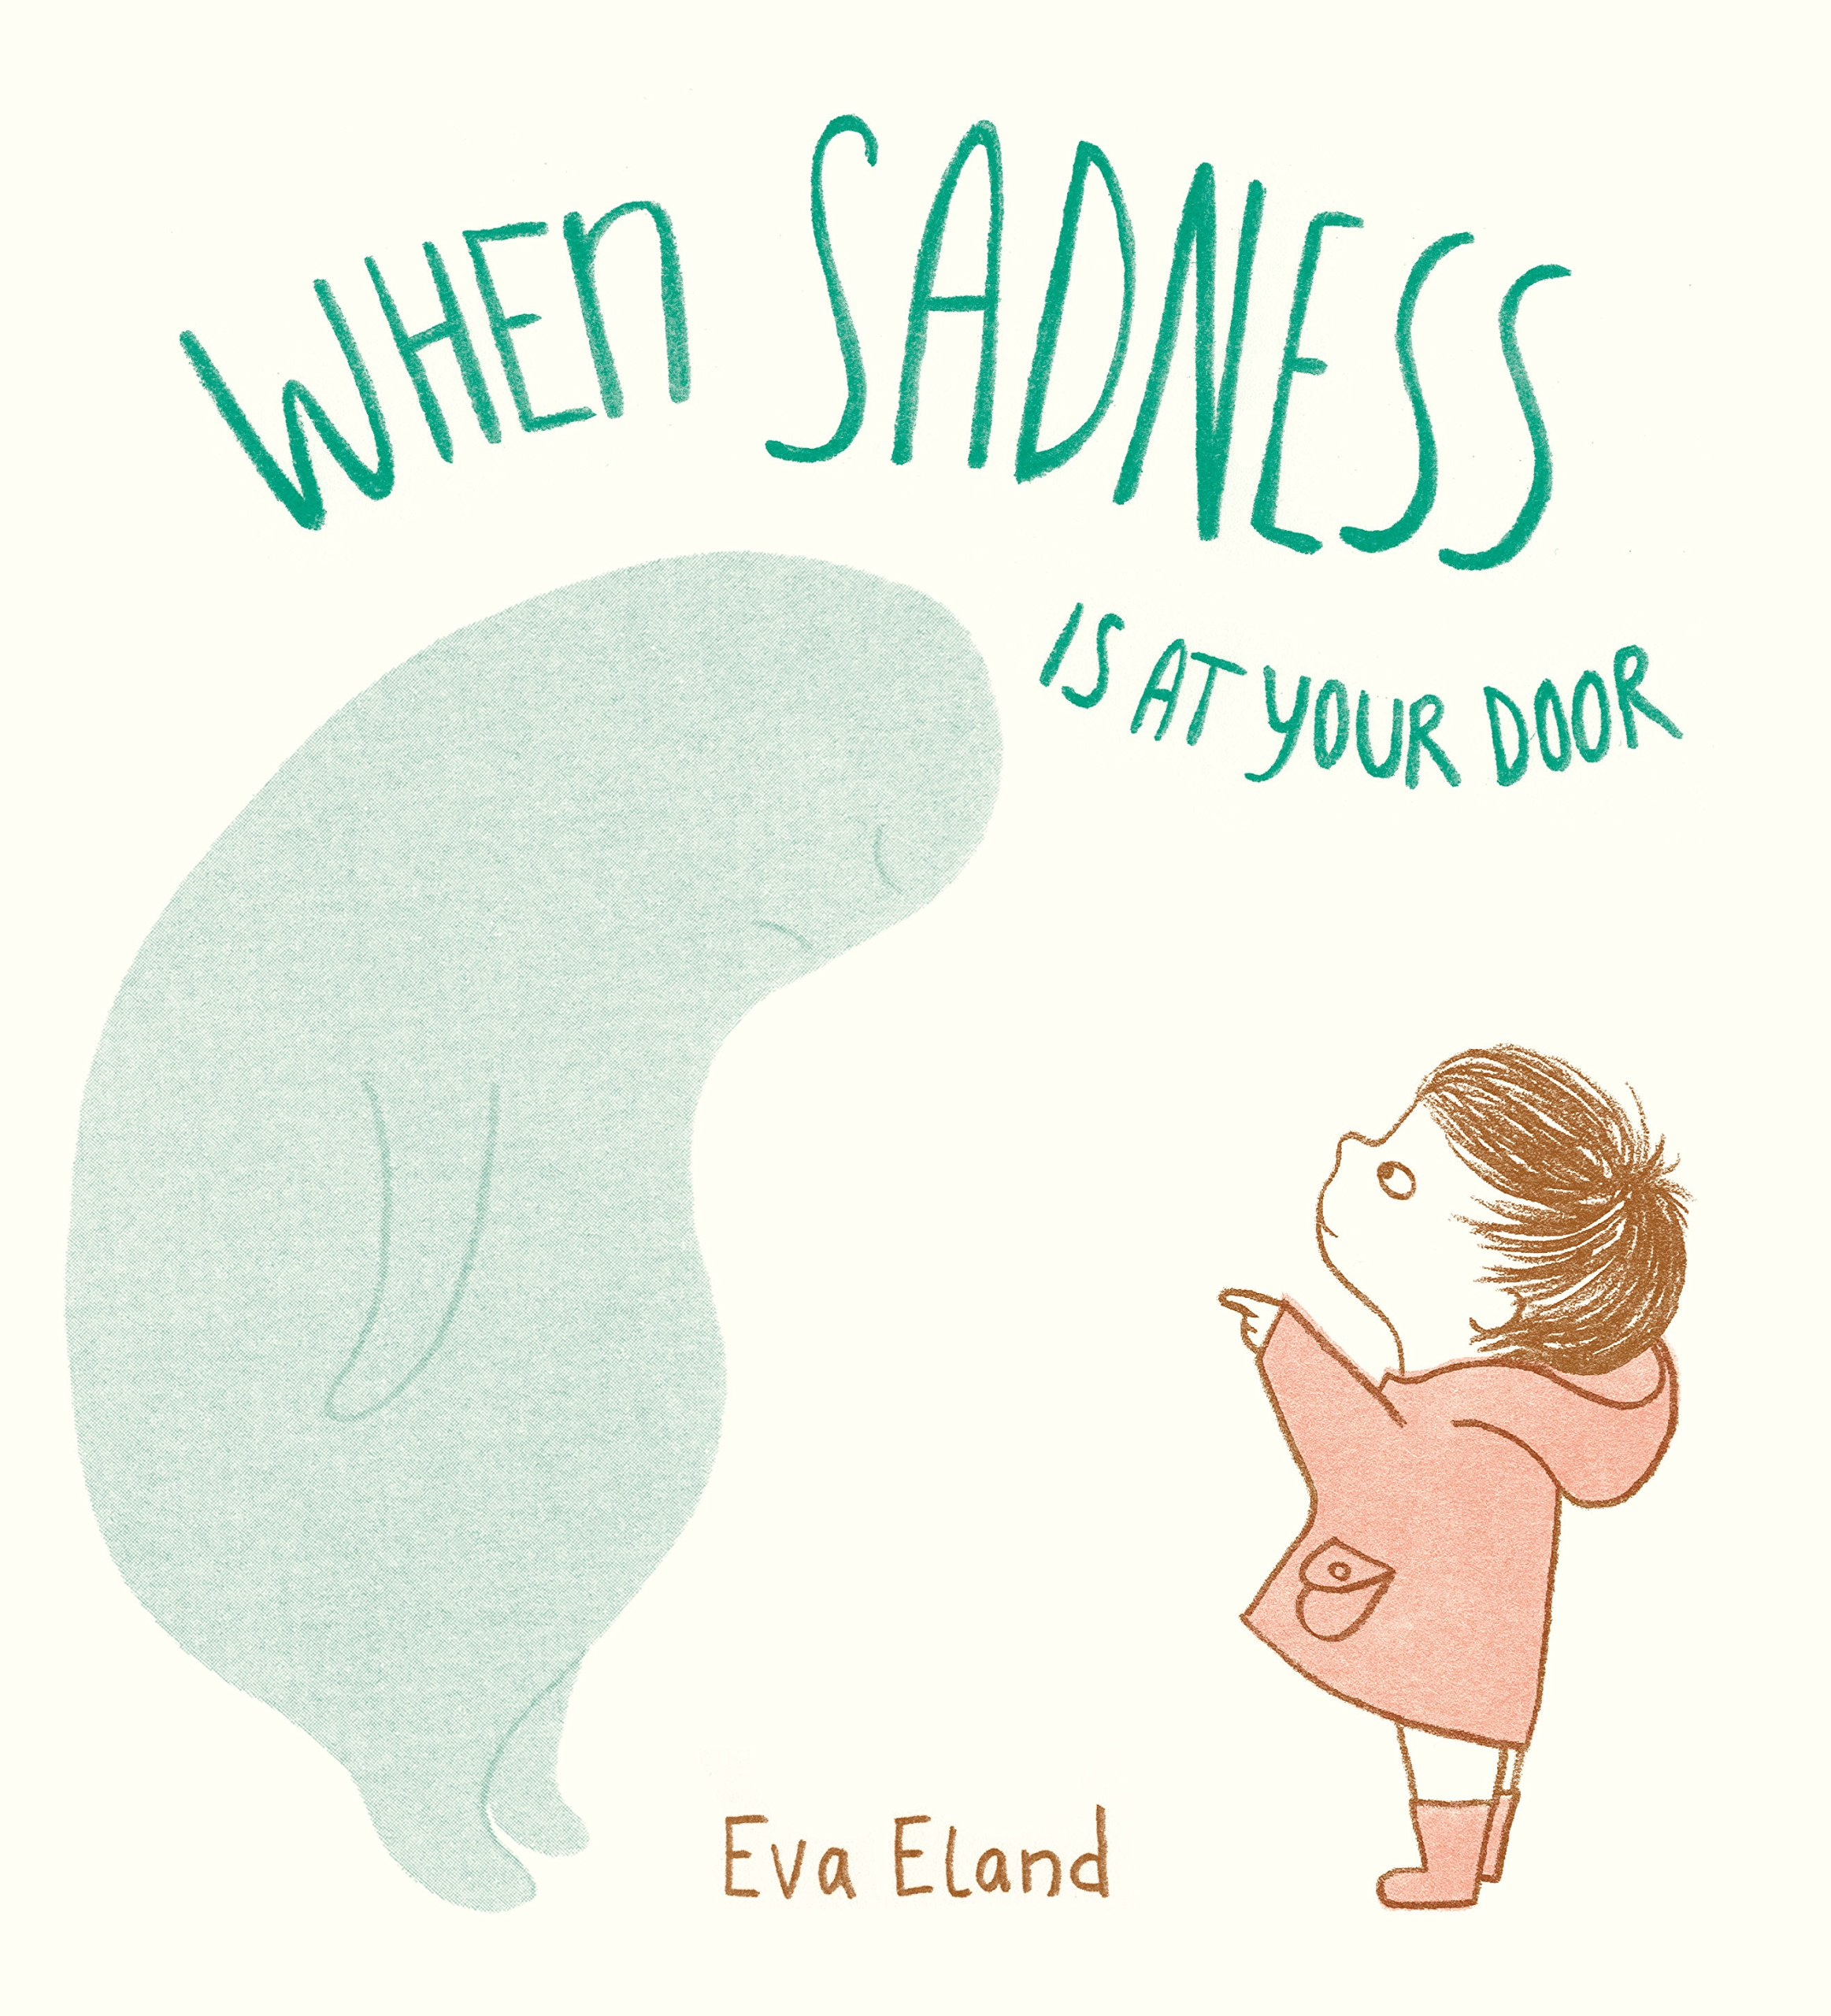 When Sadness is at Your Door: Eland, Eva: 9780525707189: Amazon.com: Books